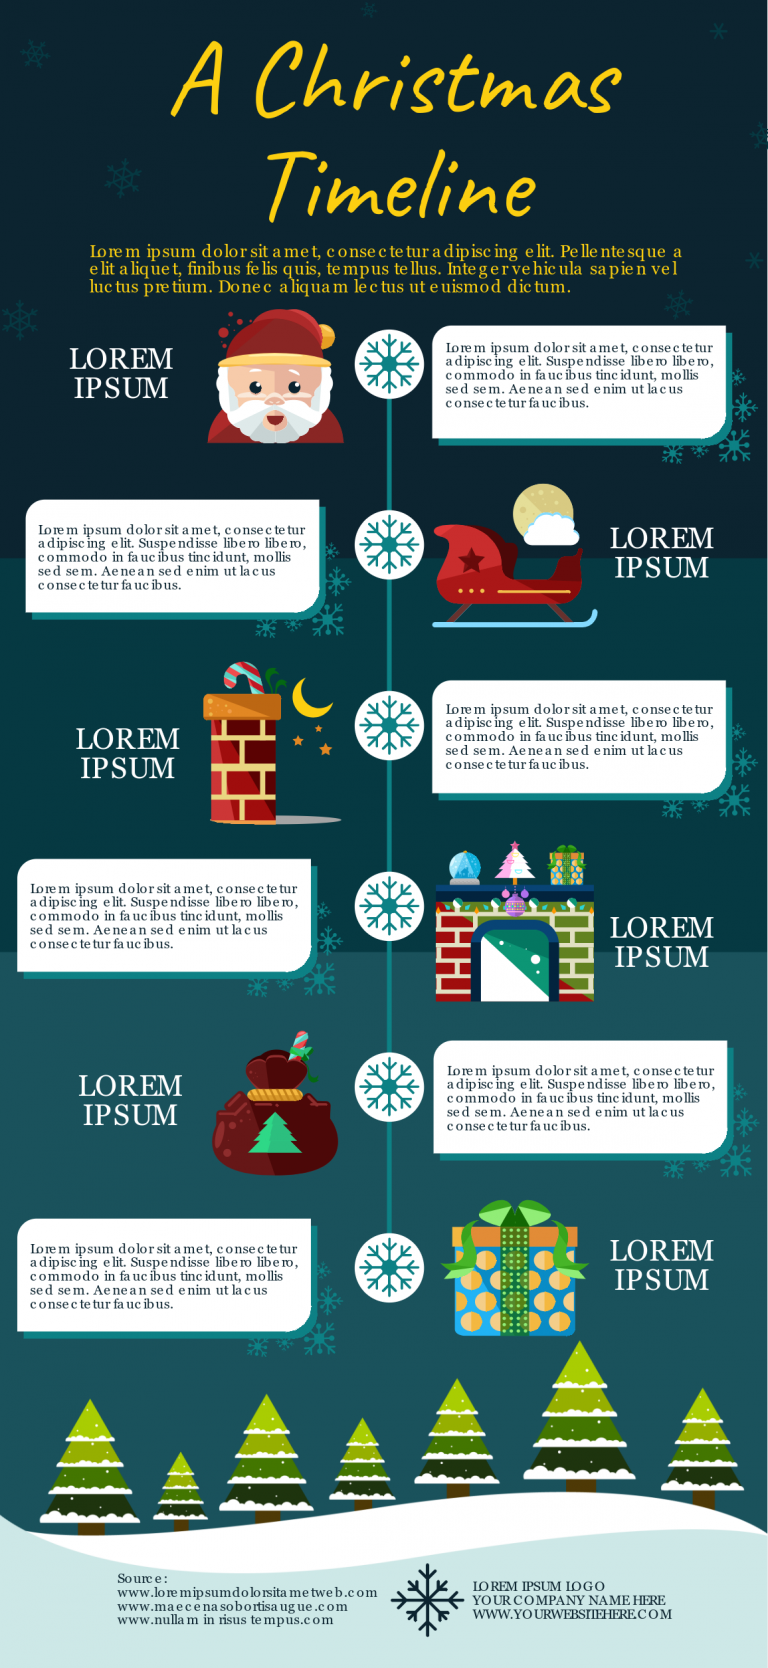 Holiday timeline infographic template